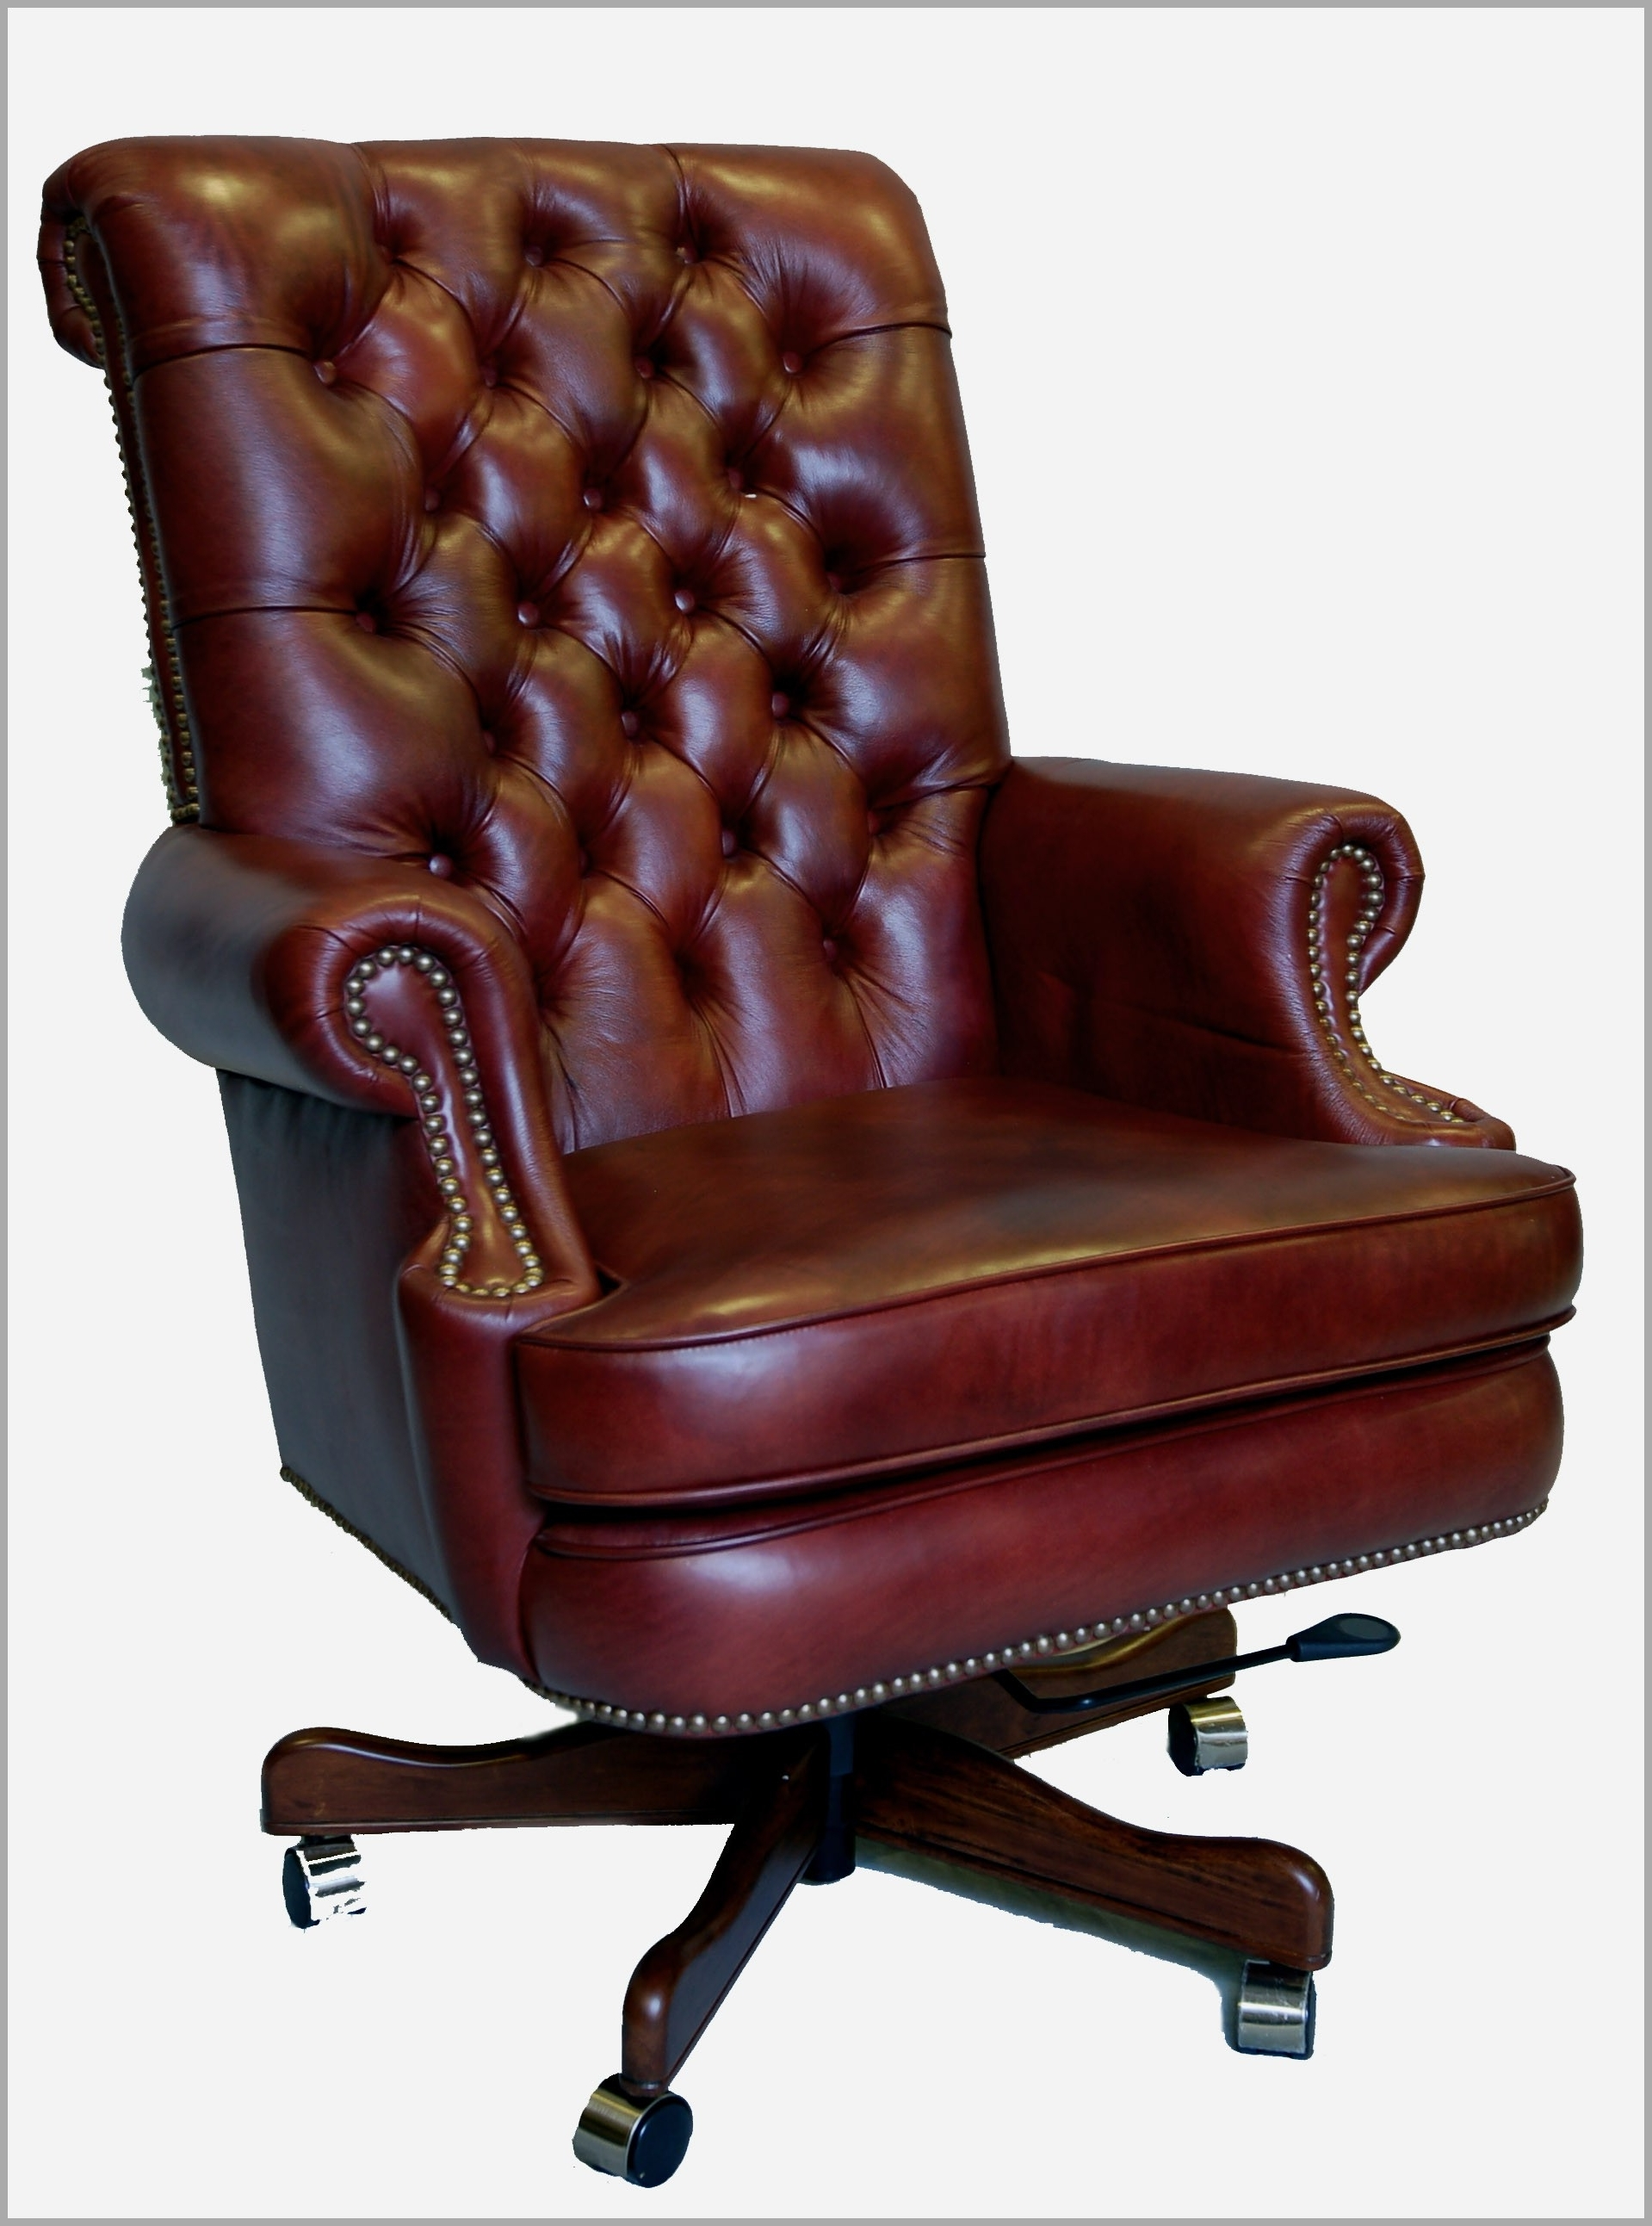 Wood And Leather Executive Office Chairs For 2019 Chair : Office Star Leather Executive Office Chair Niceday Berlin (View 11 of 20)